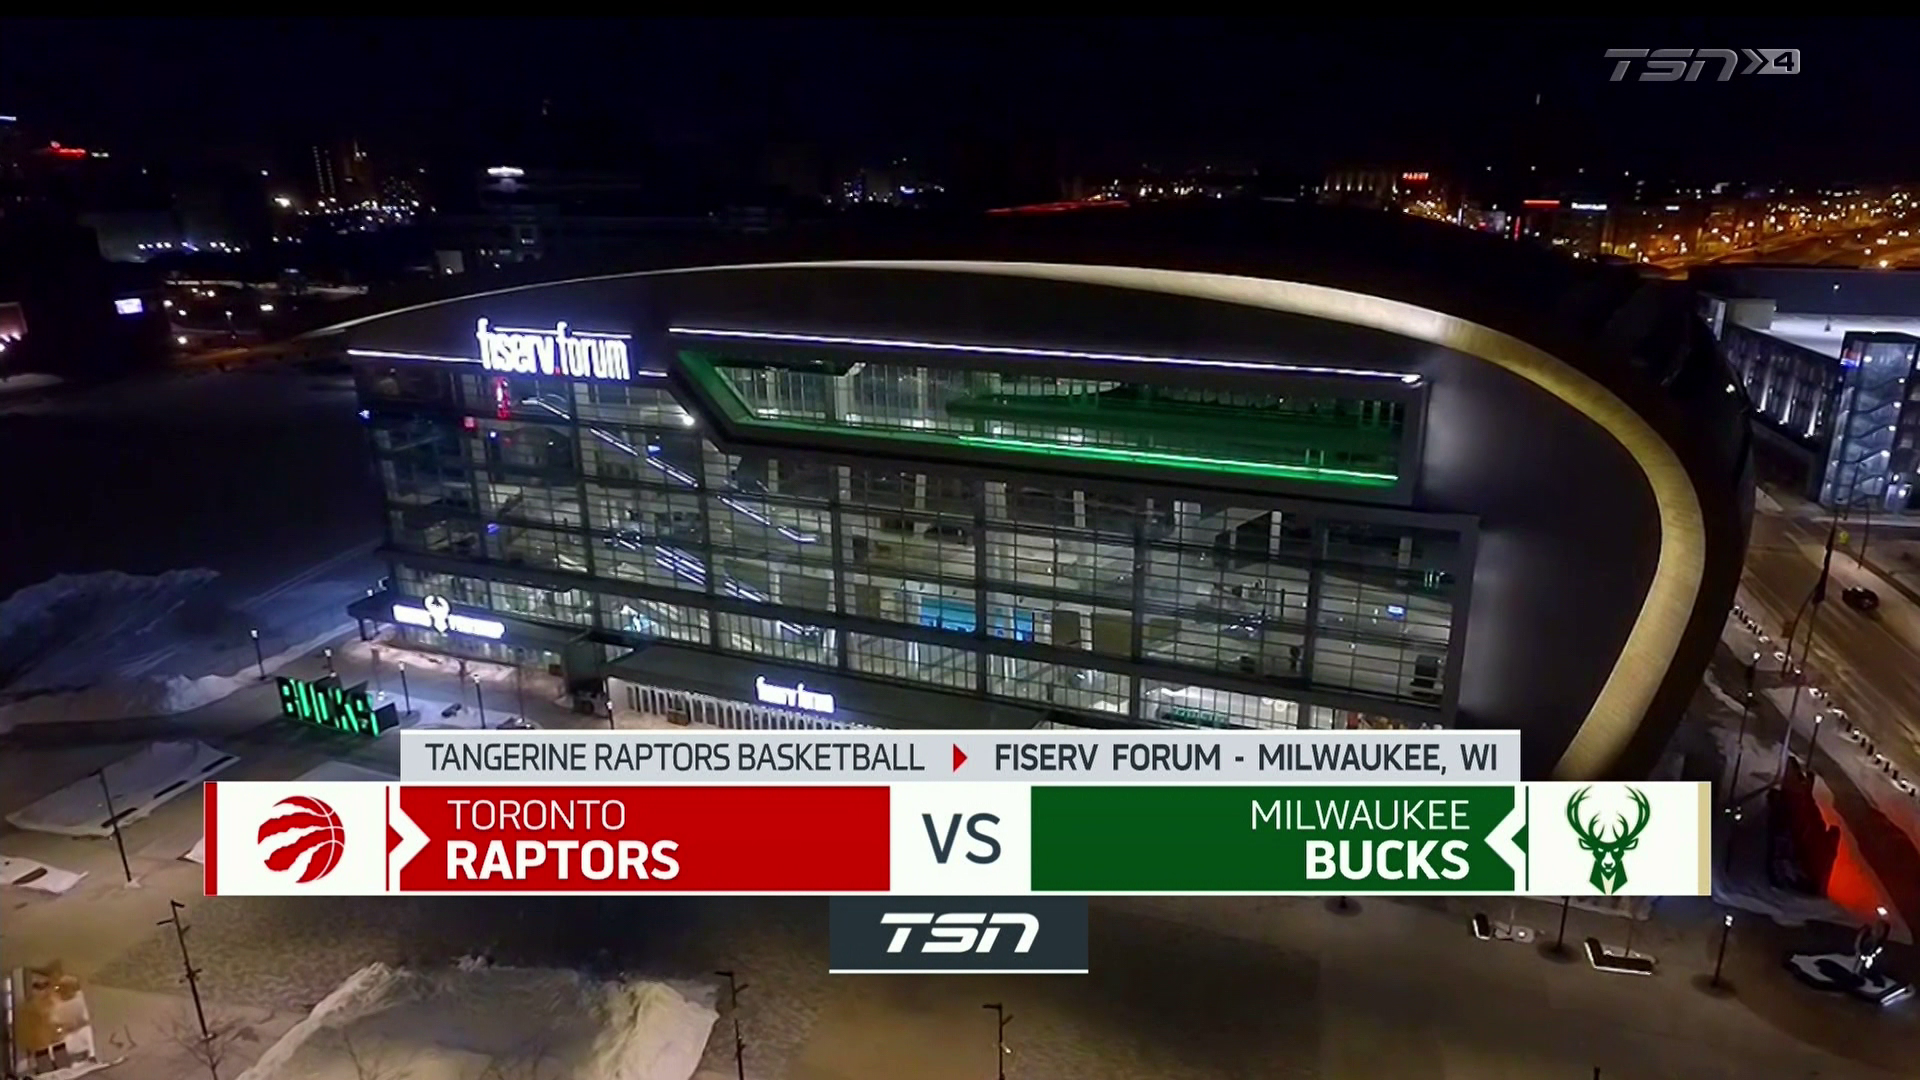 Tangerine Game Highlights: Raptors at Bucks - February 18, 2021